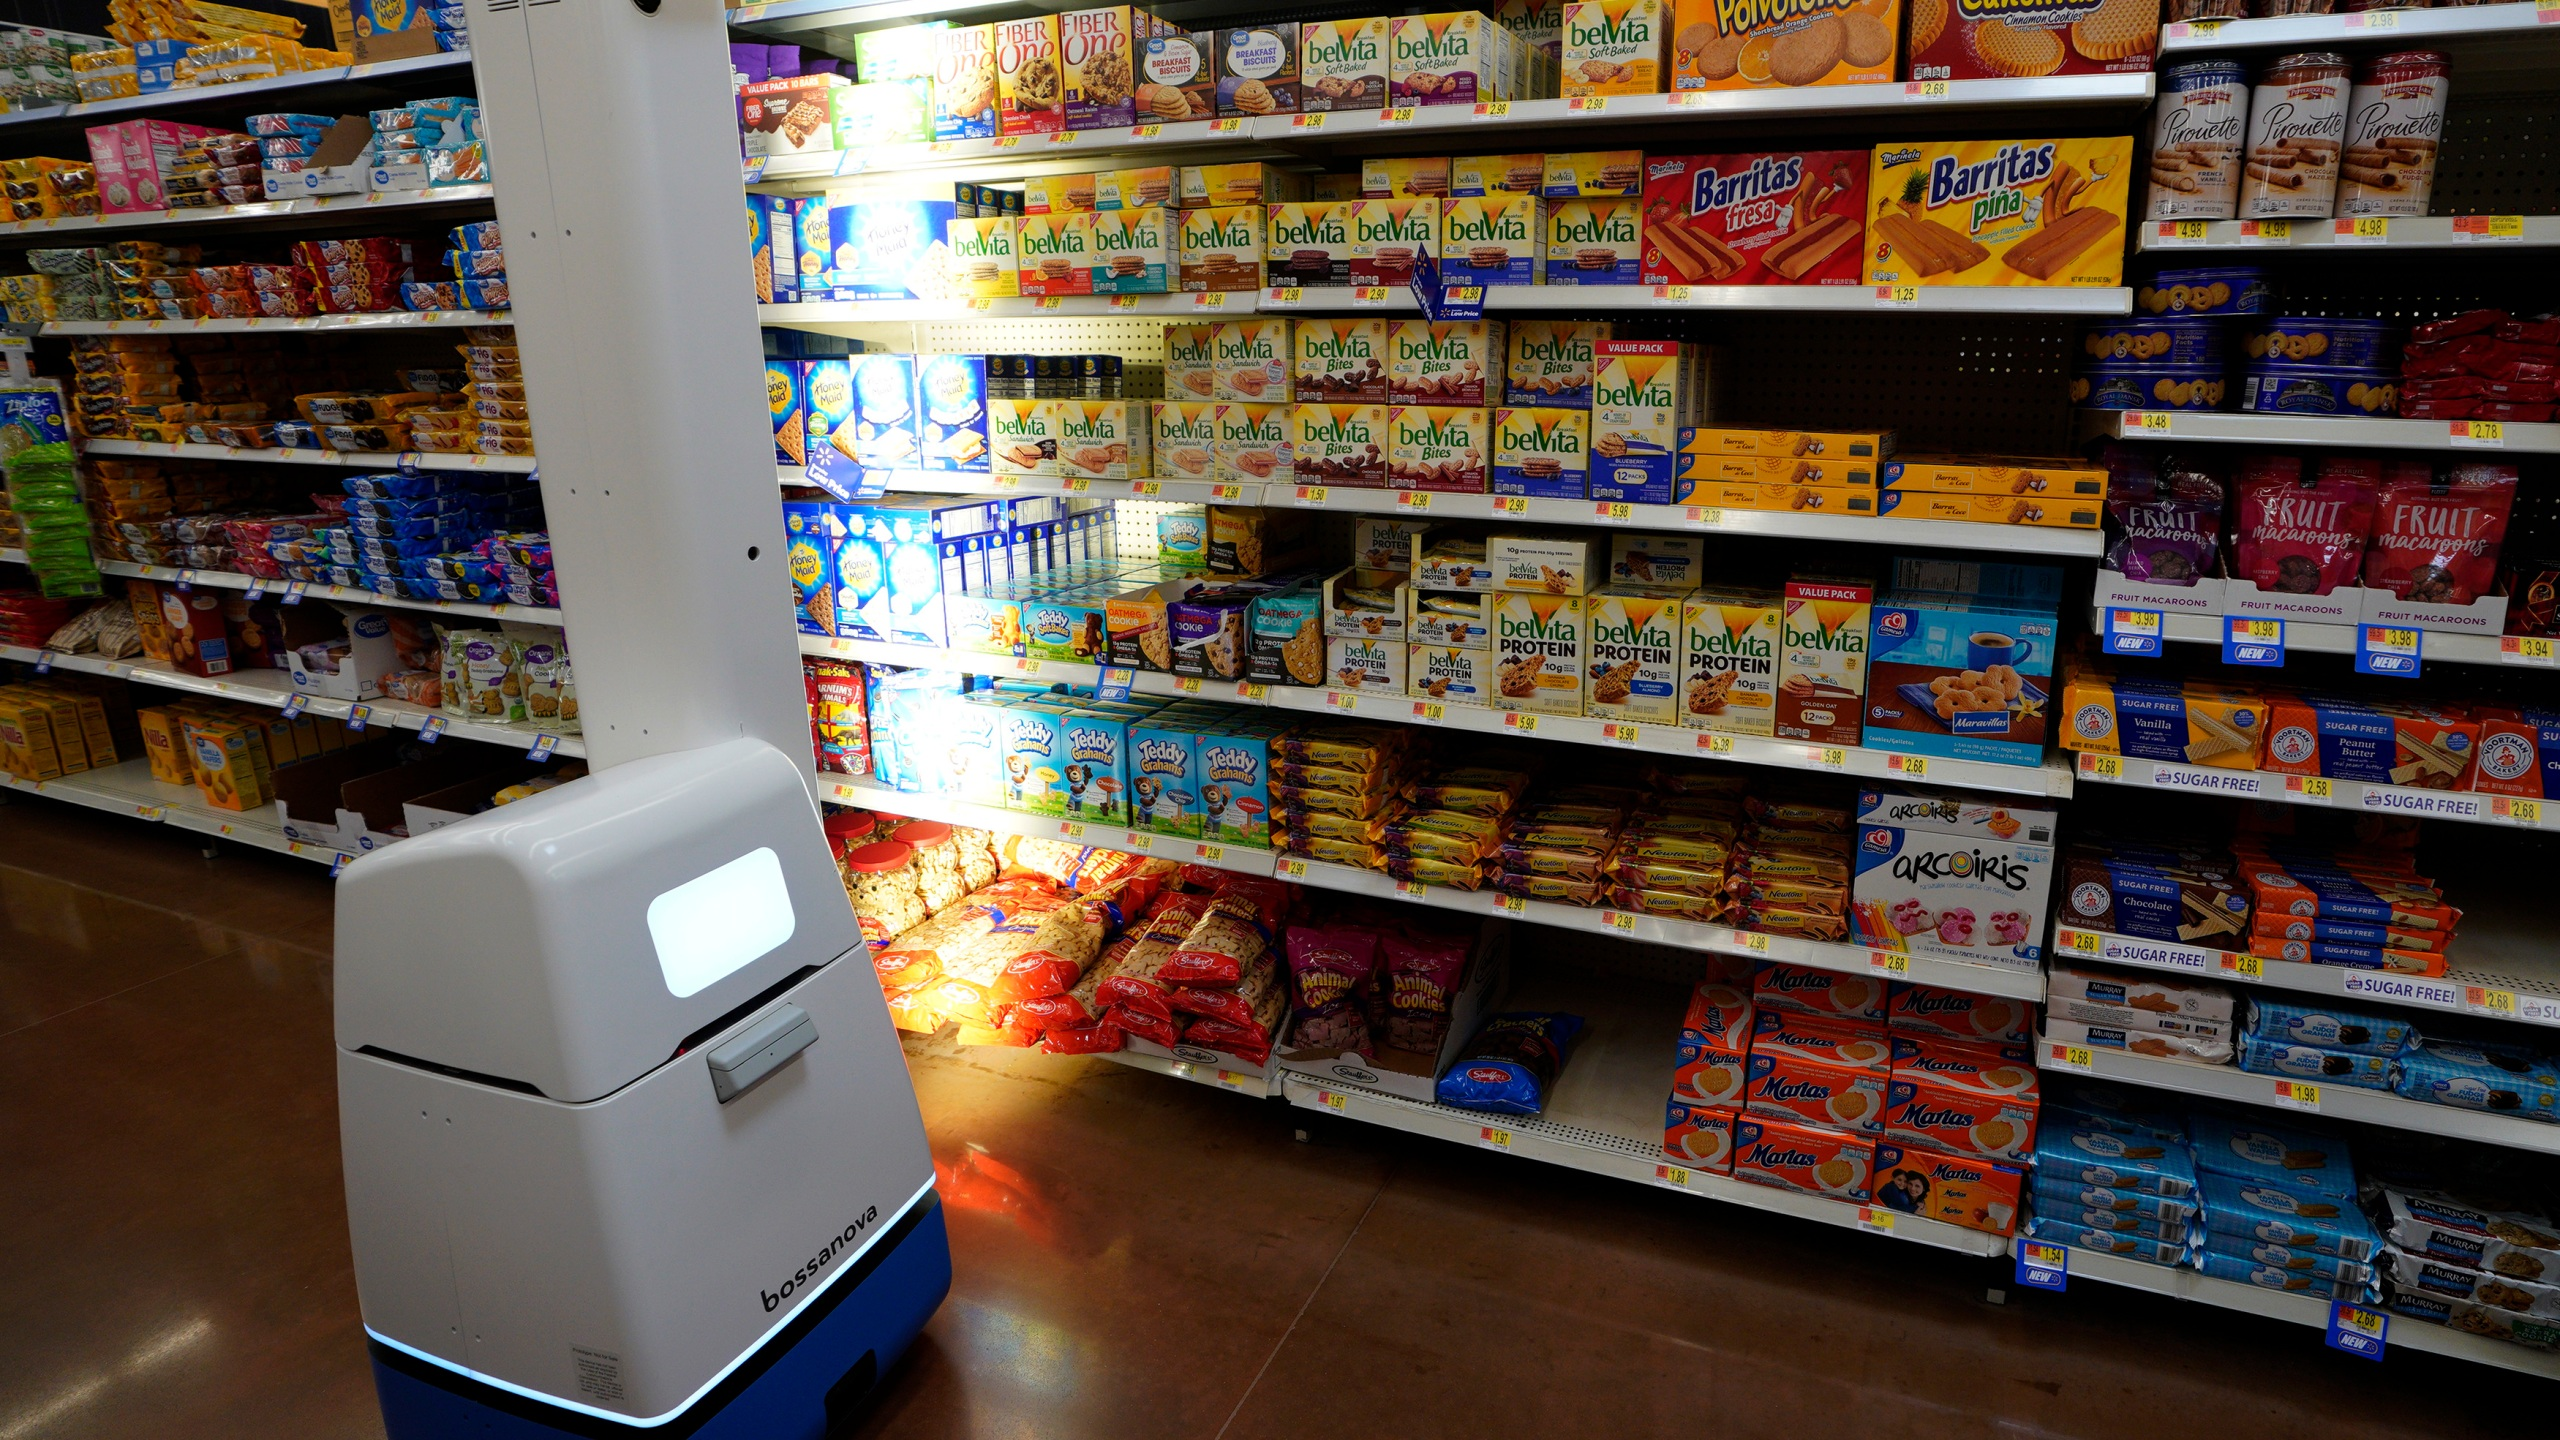 A Bossa Nova Robotics scanning device moves through an aisle at a Walmart Supercenter during the annual Shareholders Meeting event on May 31, 2018 in Rogers, Arkansas. (Rick T. /Getty Images)